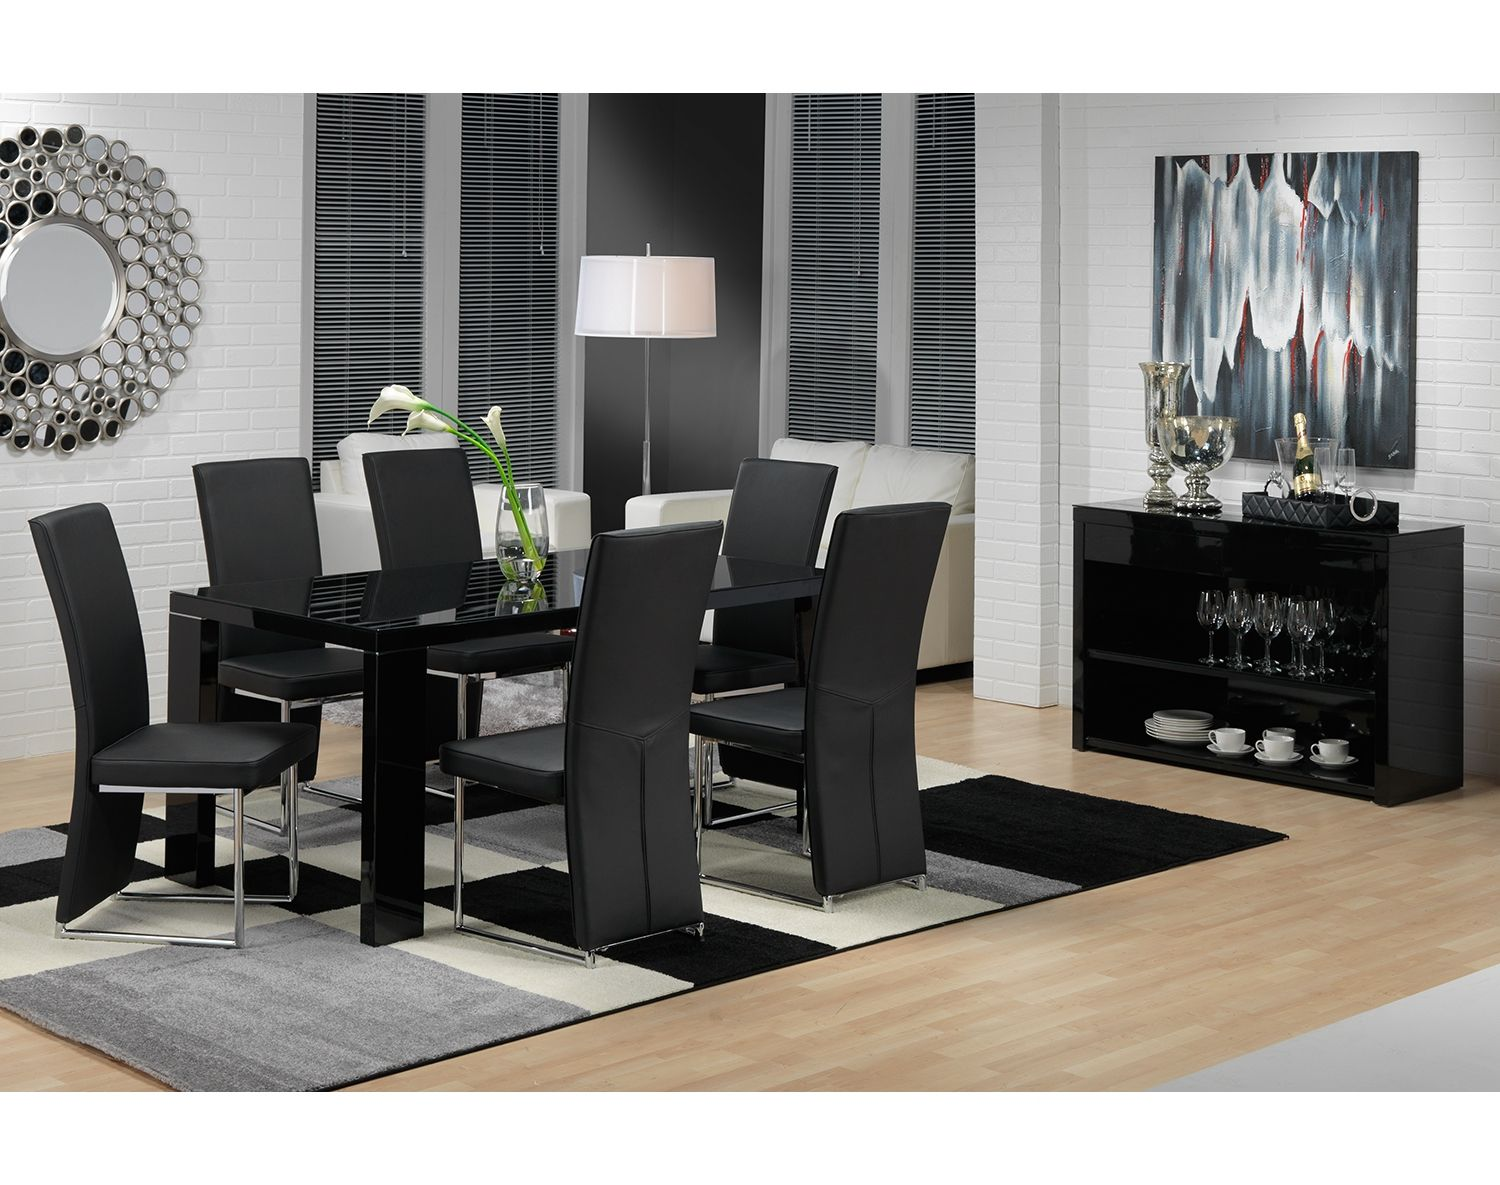 Dining Room Furniture The Bleecker II Collection Bleecker II Table